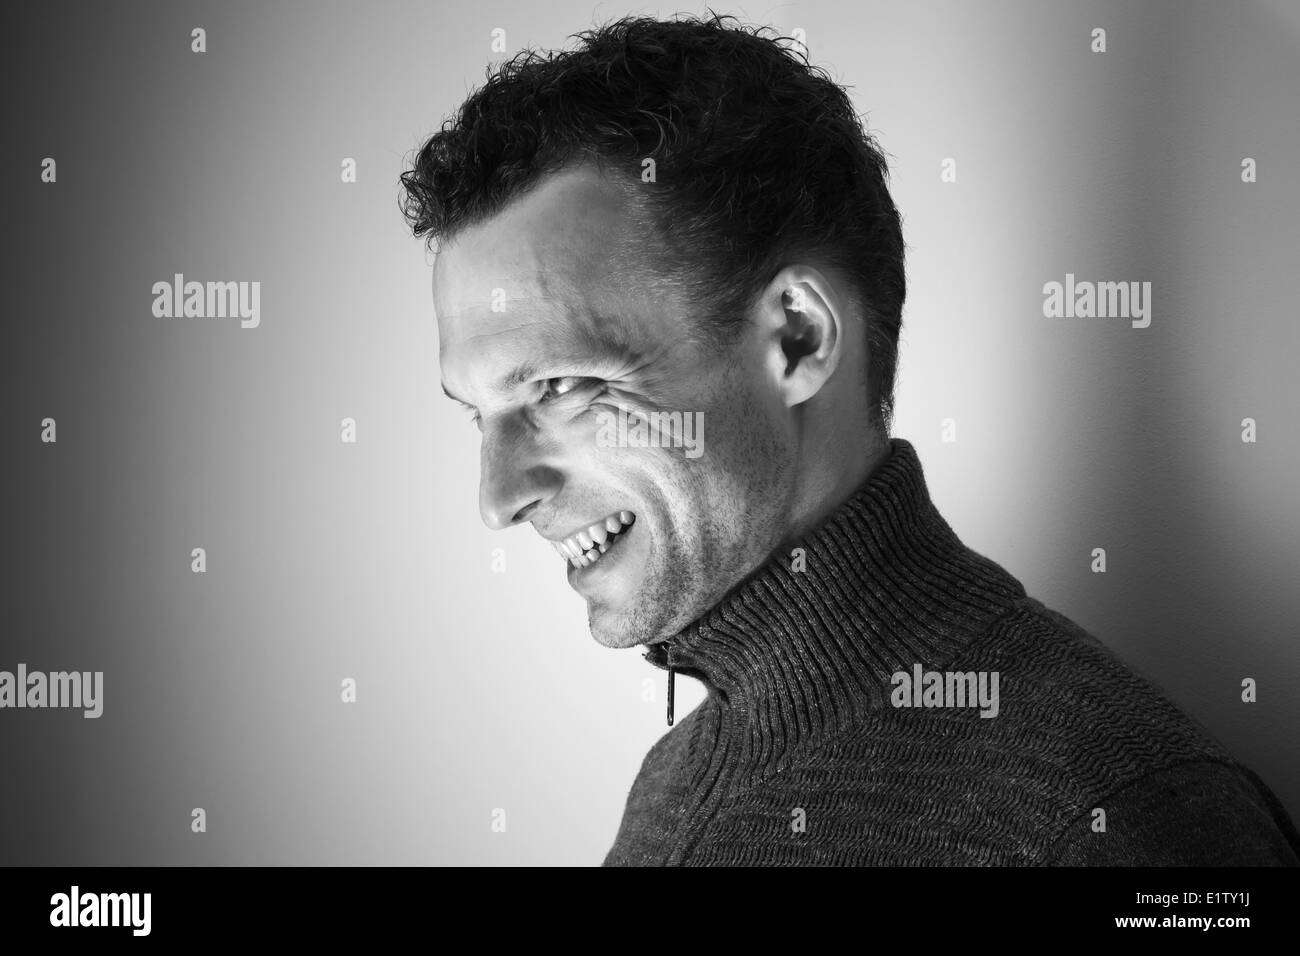 Angry laughing young Caucasian man black and white portrait - Stock Image